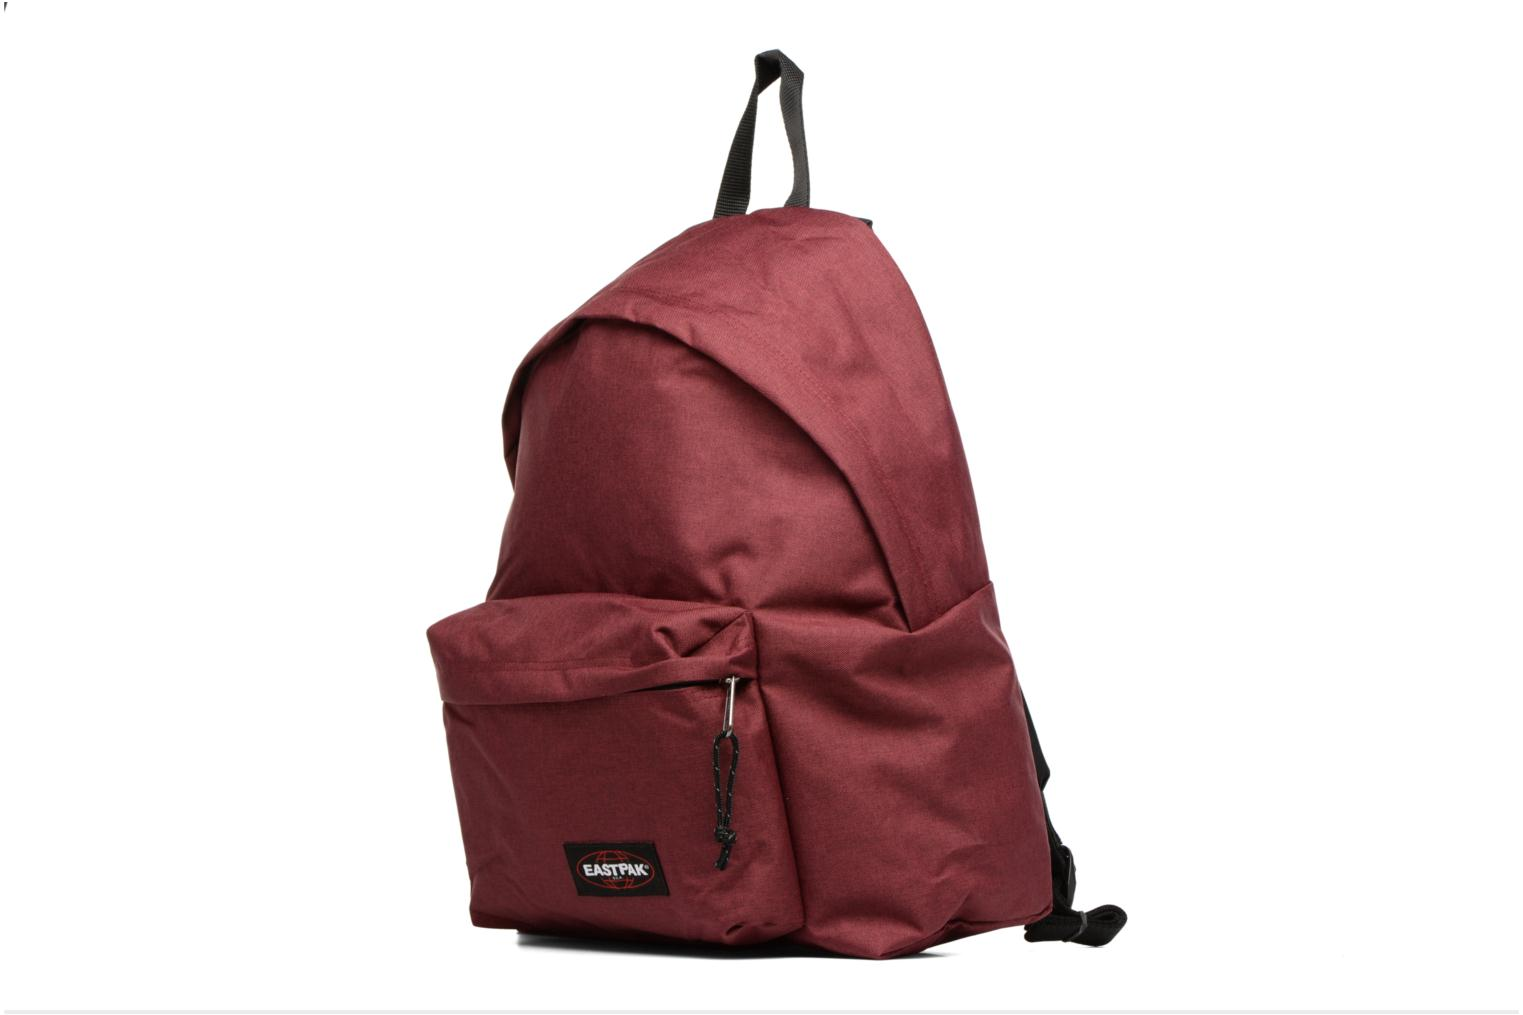 Rugzakken Eastpak PADDED PACK'R Sac à dos toile Bordeaux model